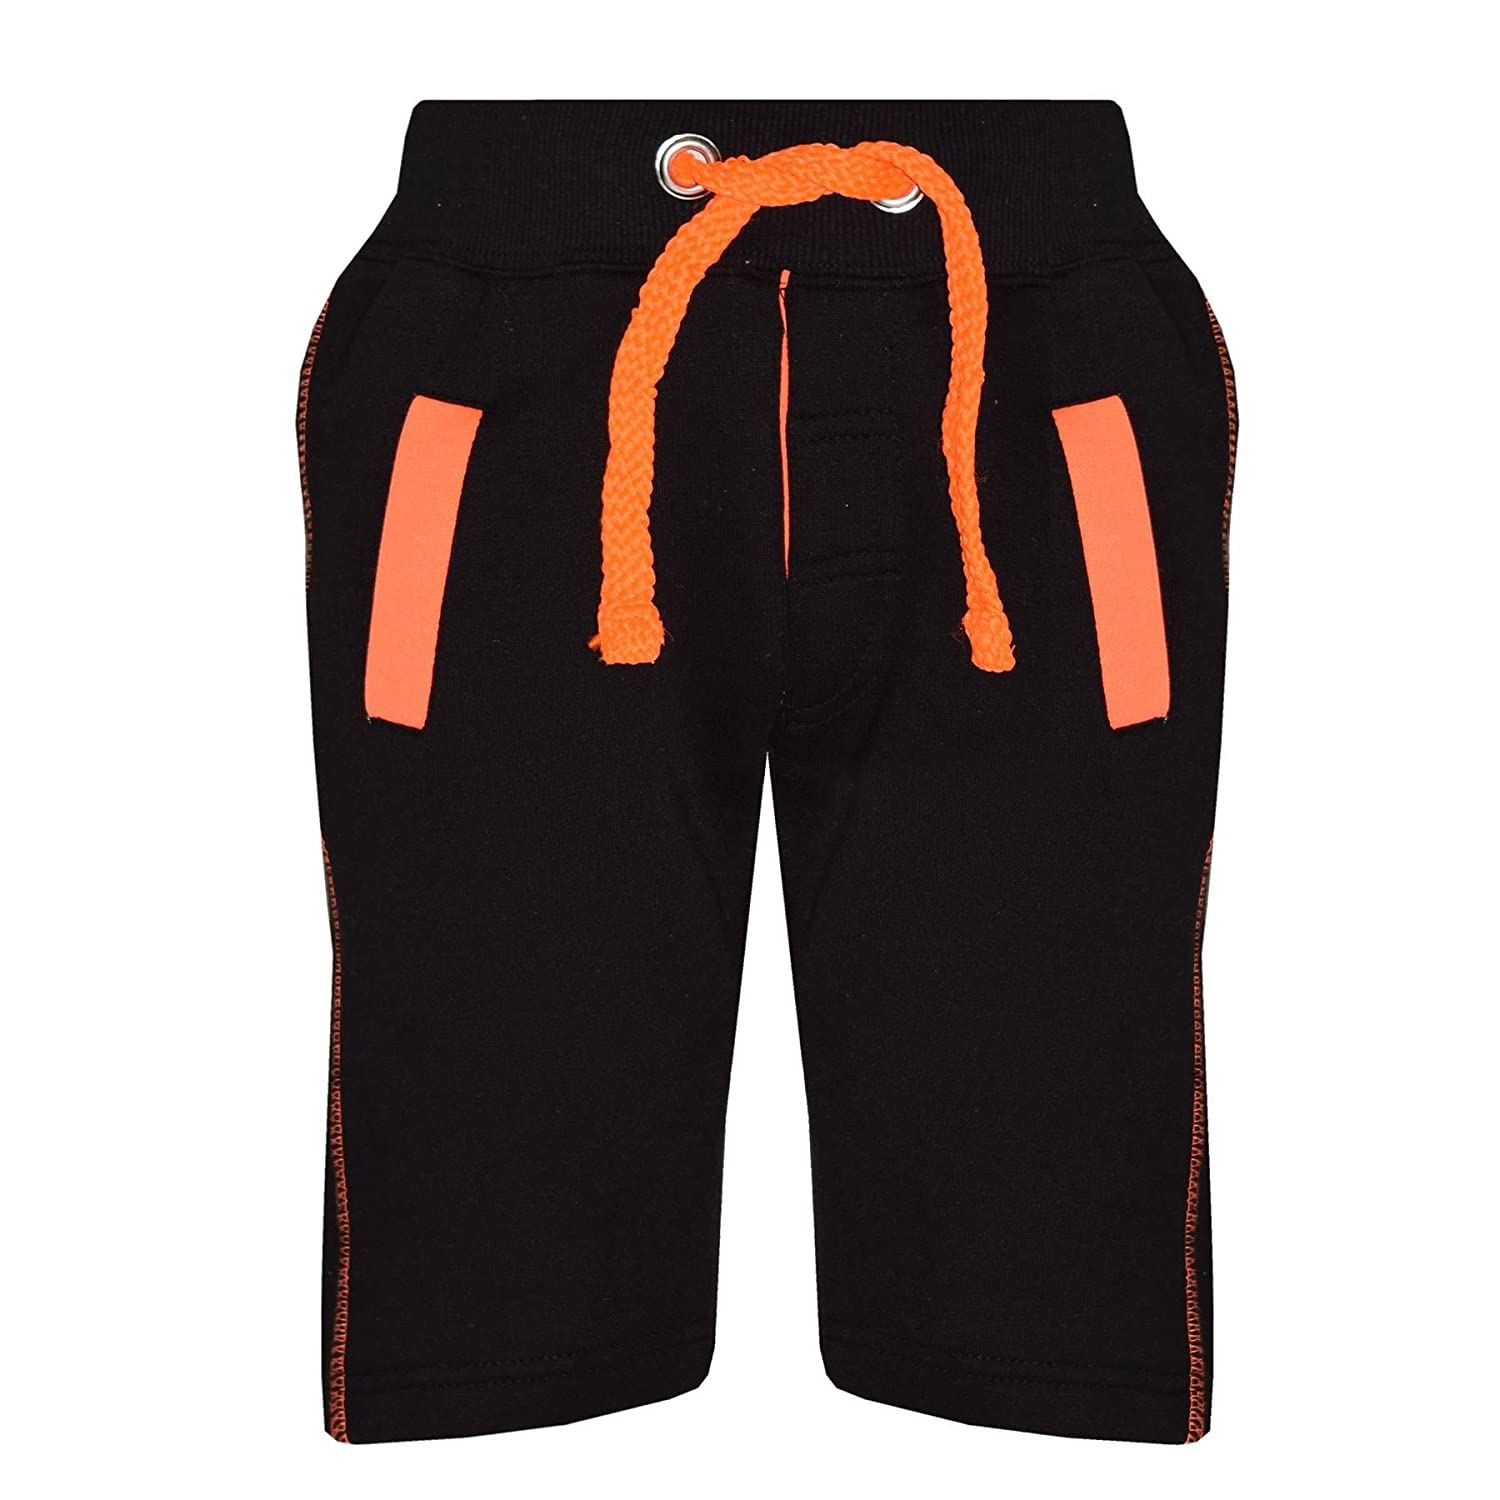 A2Z 4 Kids® Kids Shorts Girls Boys Fleece Chino Shorts - Contrast Trim Black & Neon Orange - 13 Years